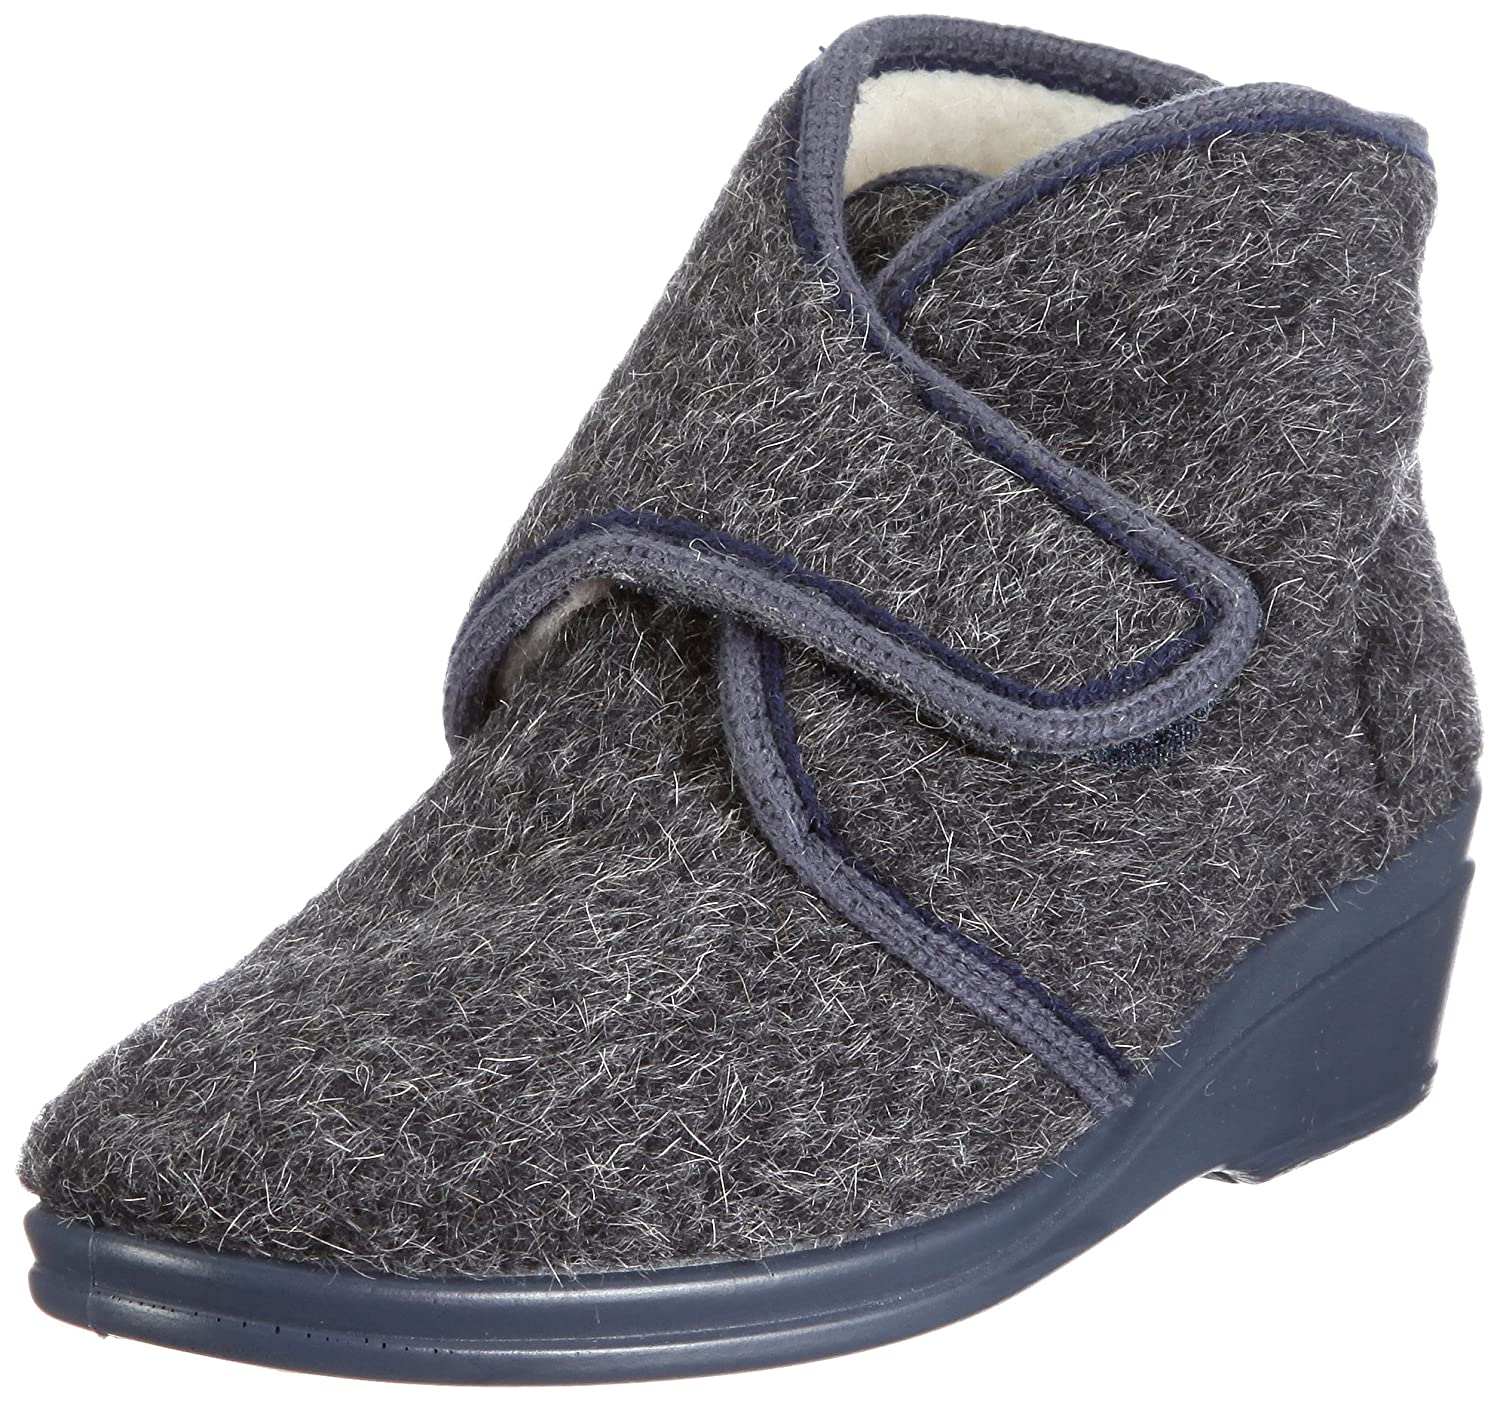 Rohde Chaussons Helga Uppsala, Chaussons femme Bleu B0168656LW femme - Blau (56 Ocean) 6bcb350 - conorscully.space